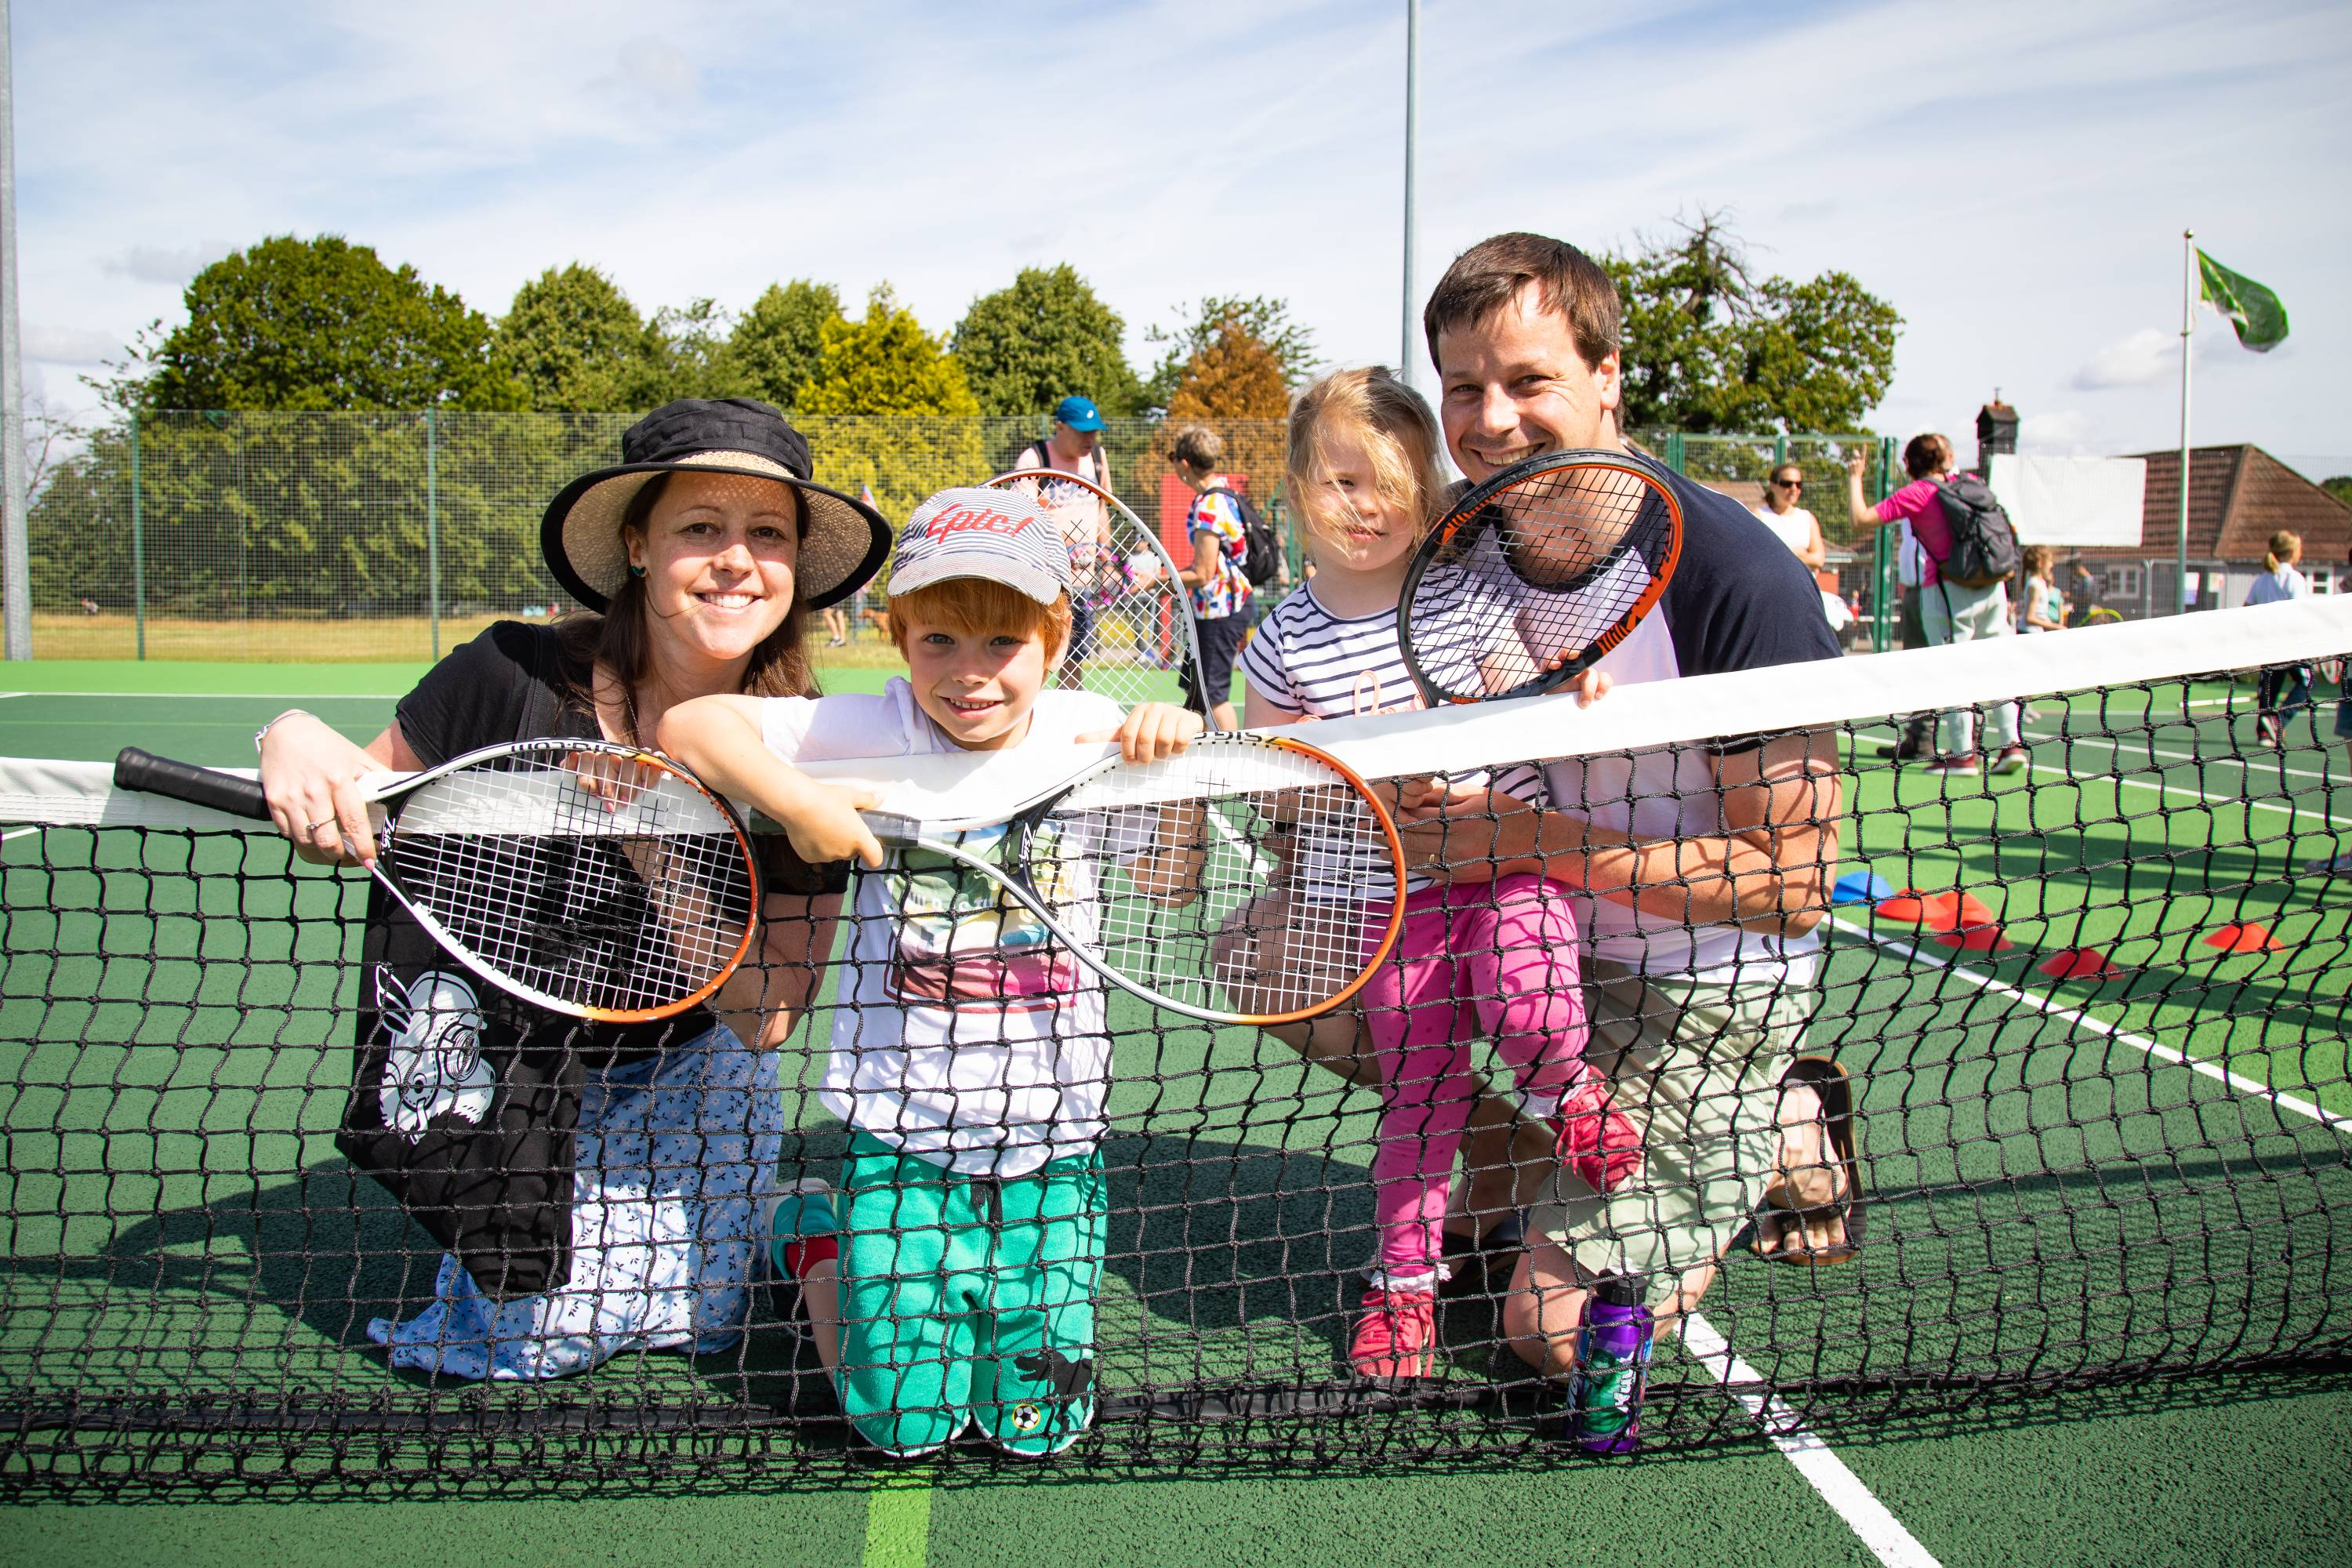 Local family enjoying Eltham Park South new tennis courts